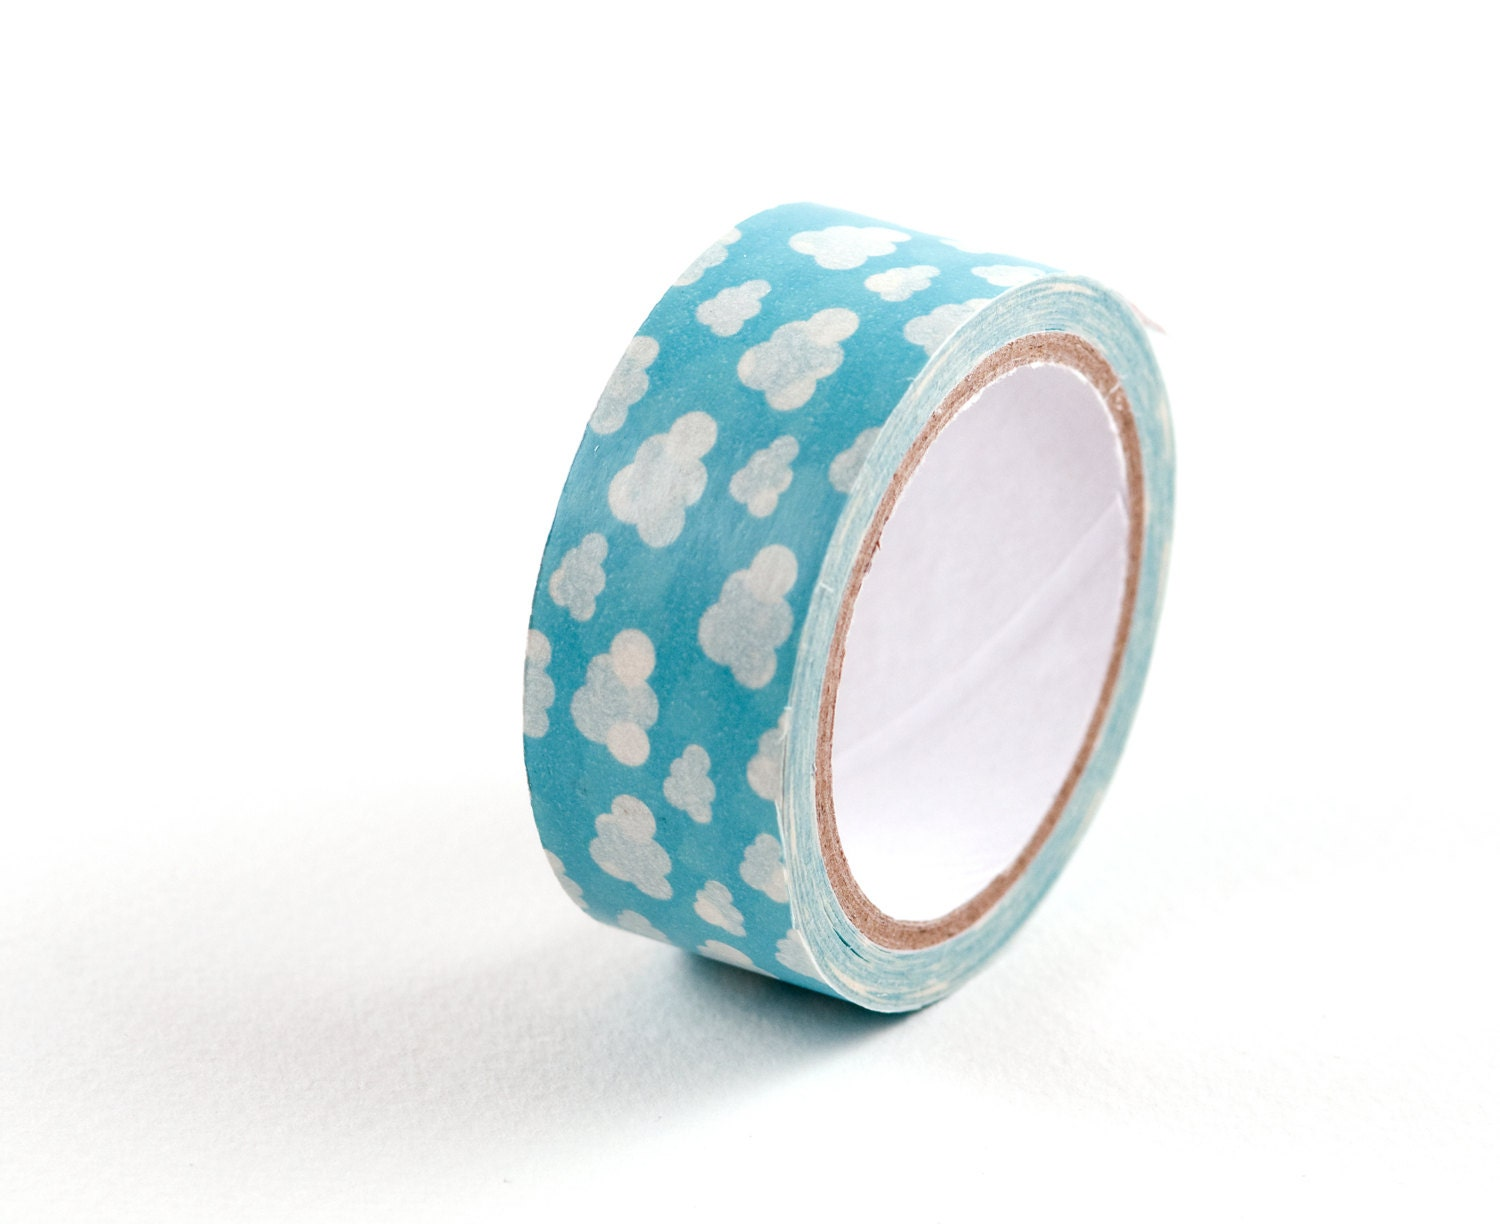 Washi Tape - Blue Skies with Clouds from KI Memories - redfinchstudio